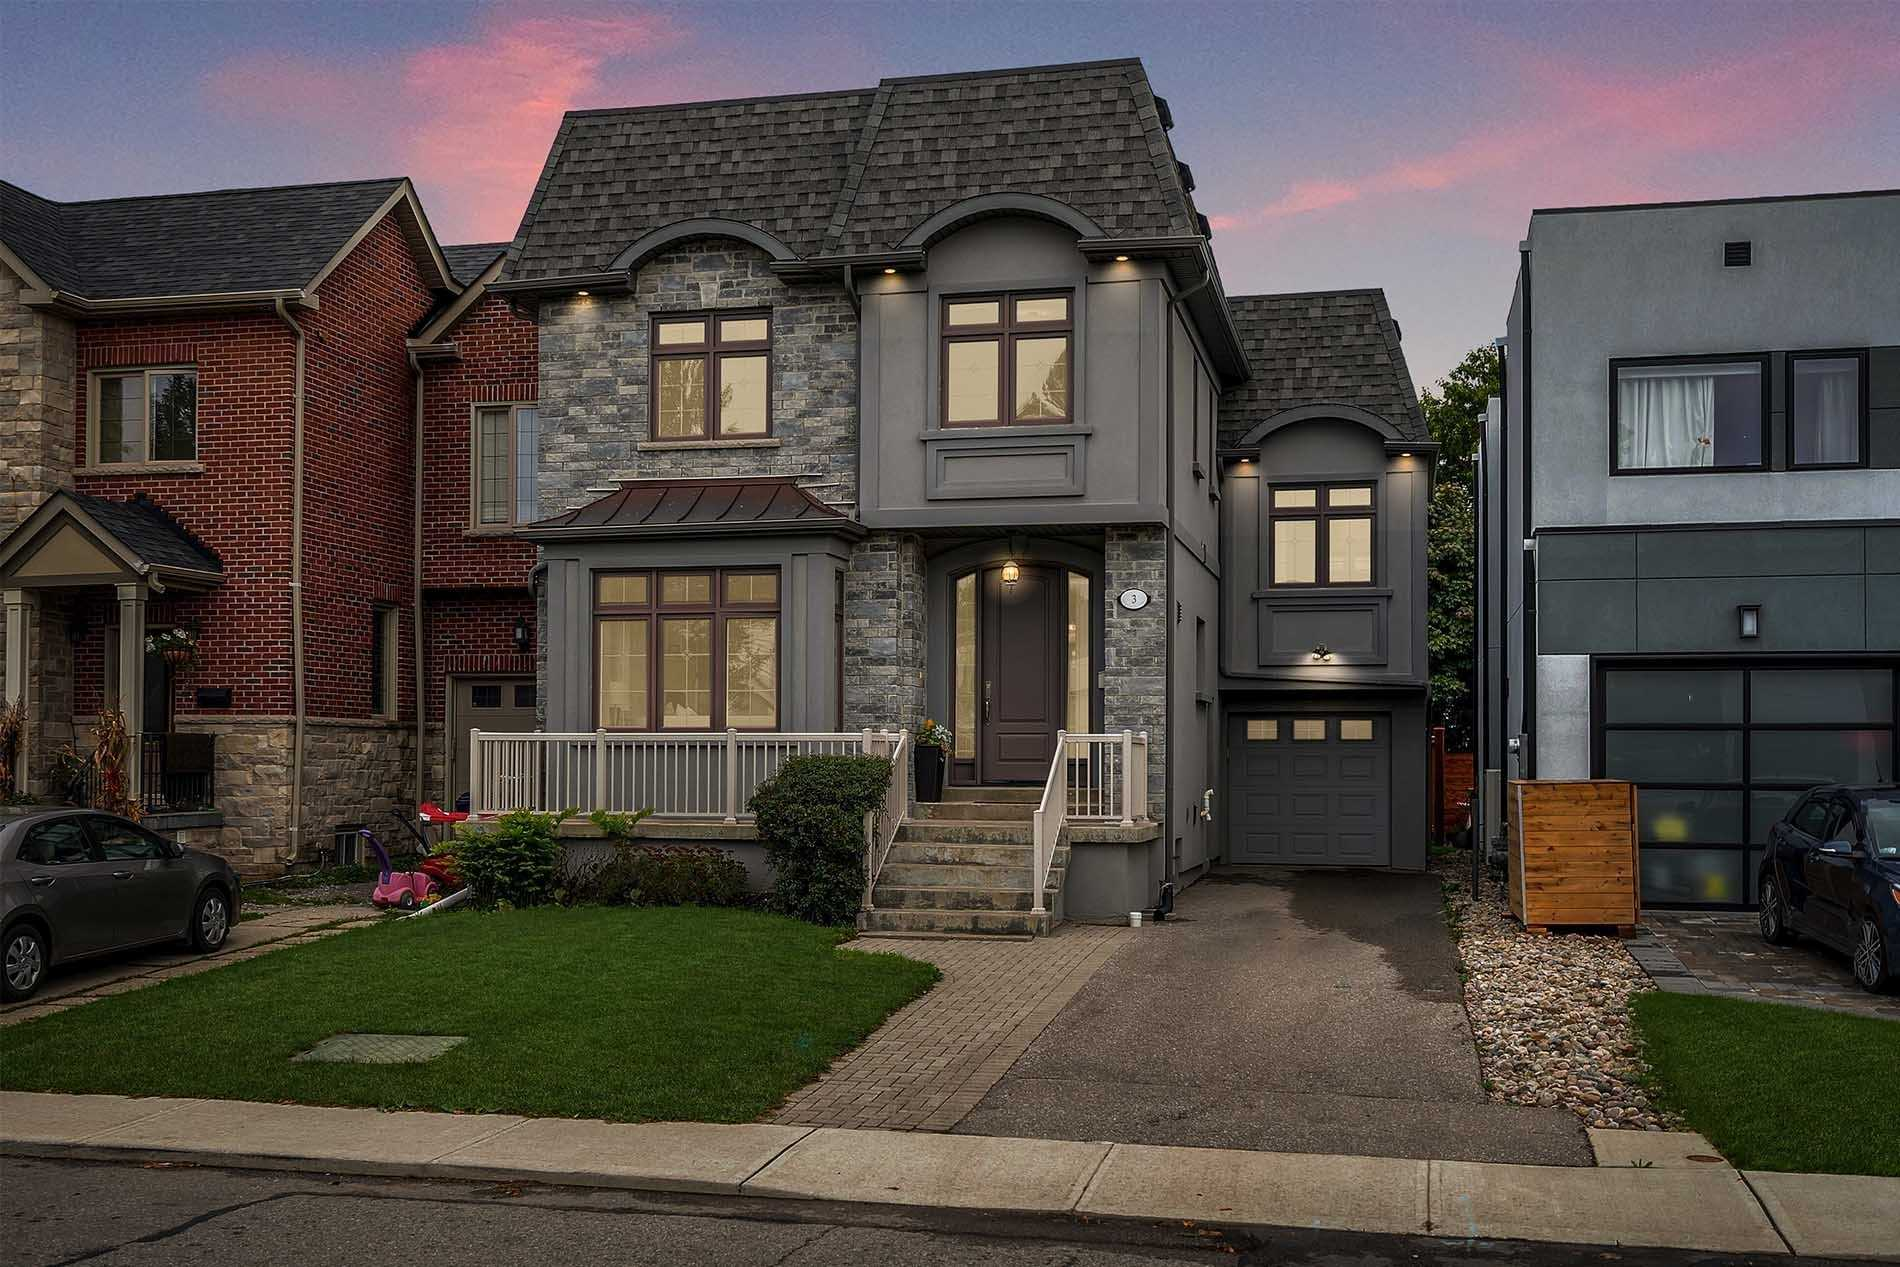 Detached house For Sale In Toronto - 3 Hunt Club Dr, Toronto, Ontario, Canada M1N2W6 , 4 Bedrooms Bedrooms, ,4 BathroomsBathrooms,Detached,For Sale,Hunt Club